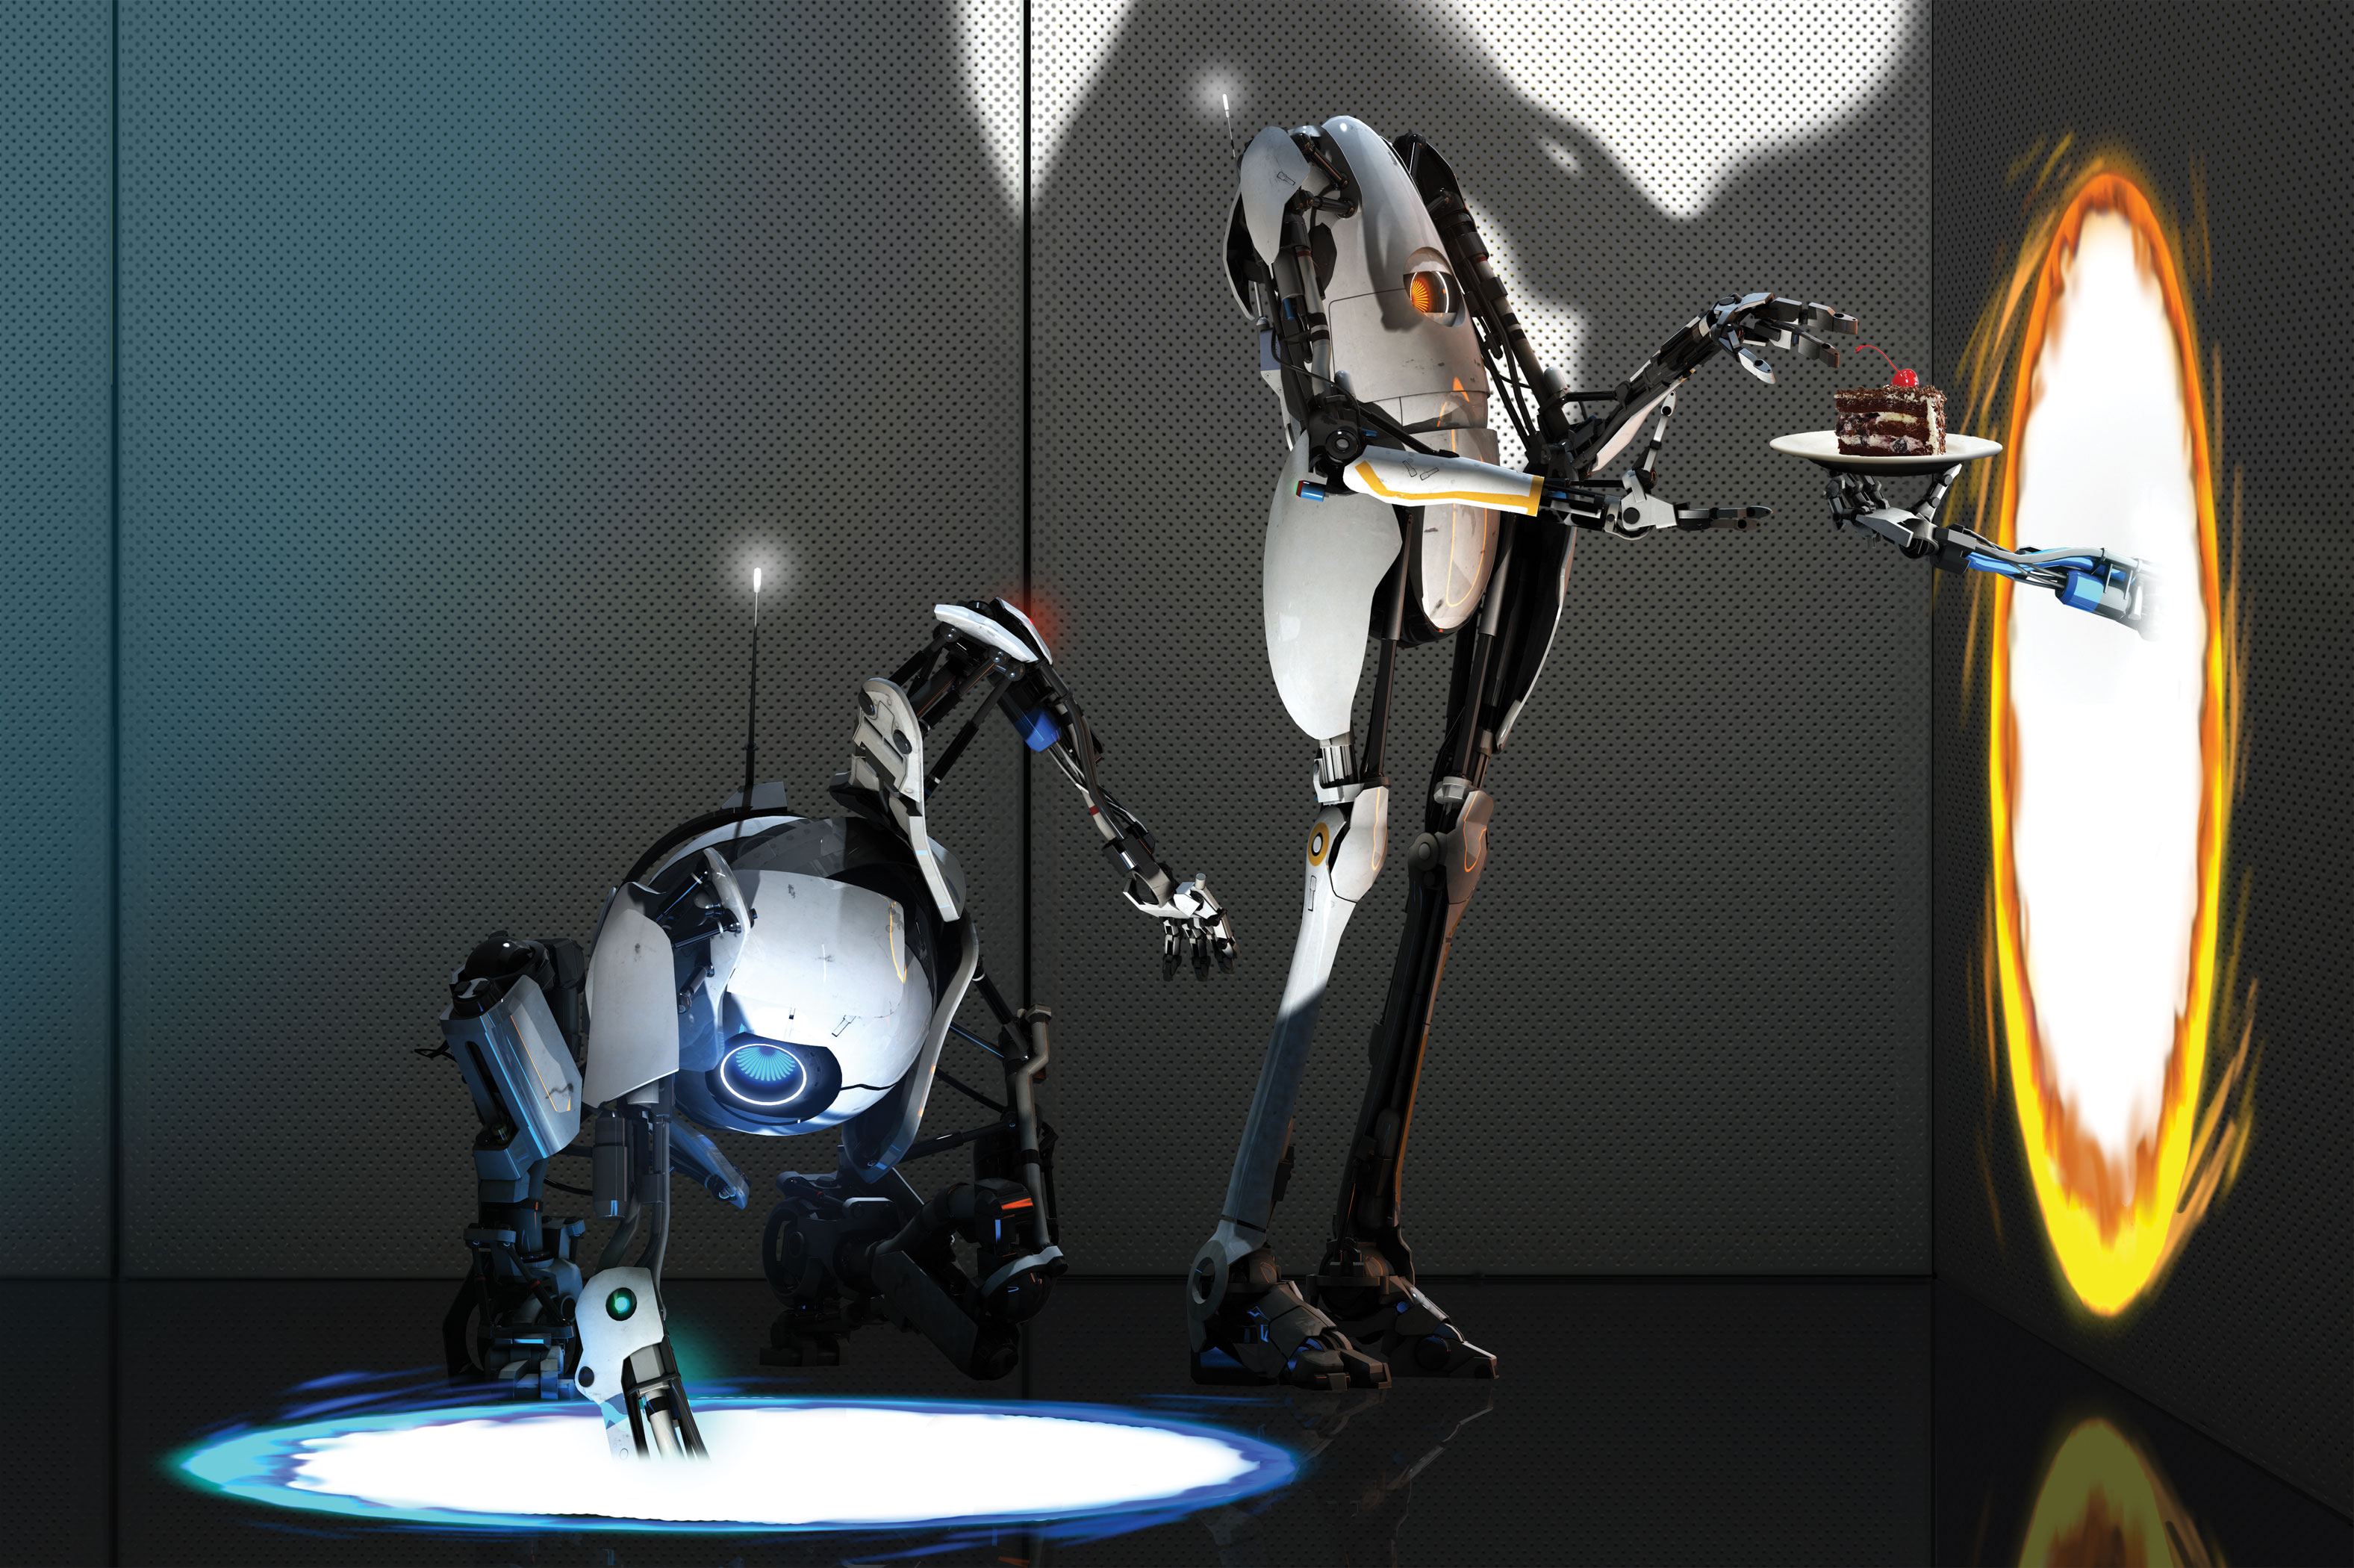 A kneeling robot sticks its arm into the ground while another stands nearby accepting a slice of cake from a disembodied hand